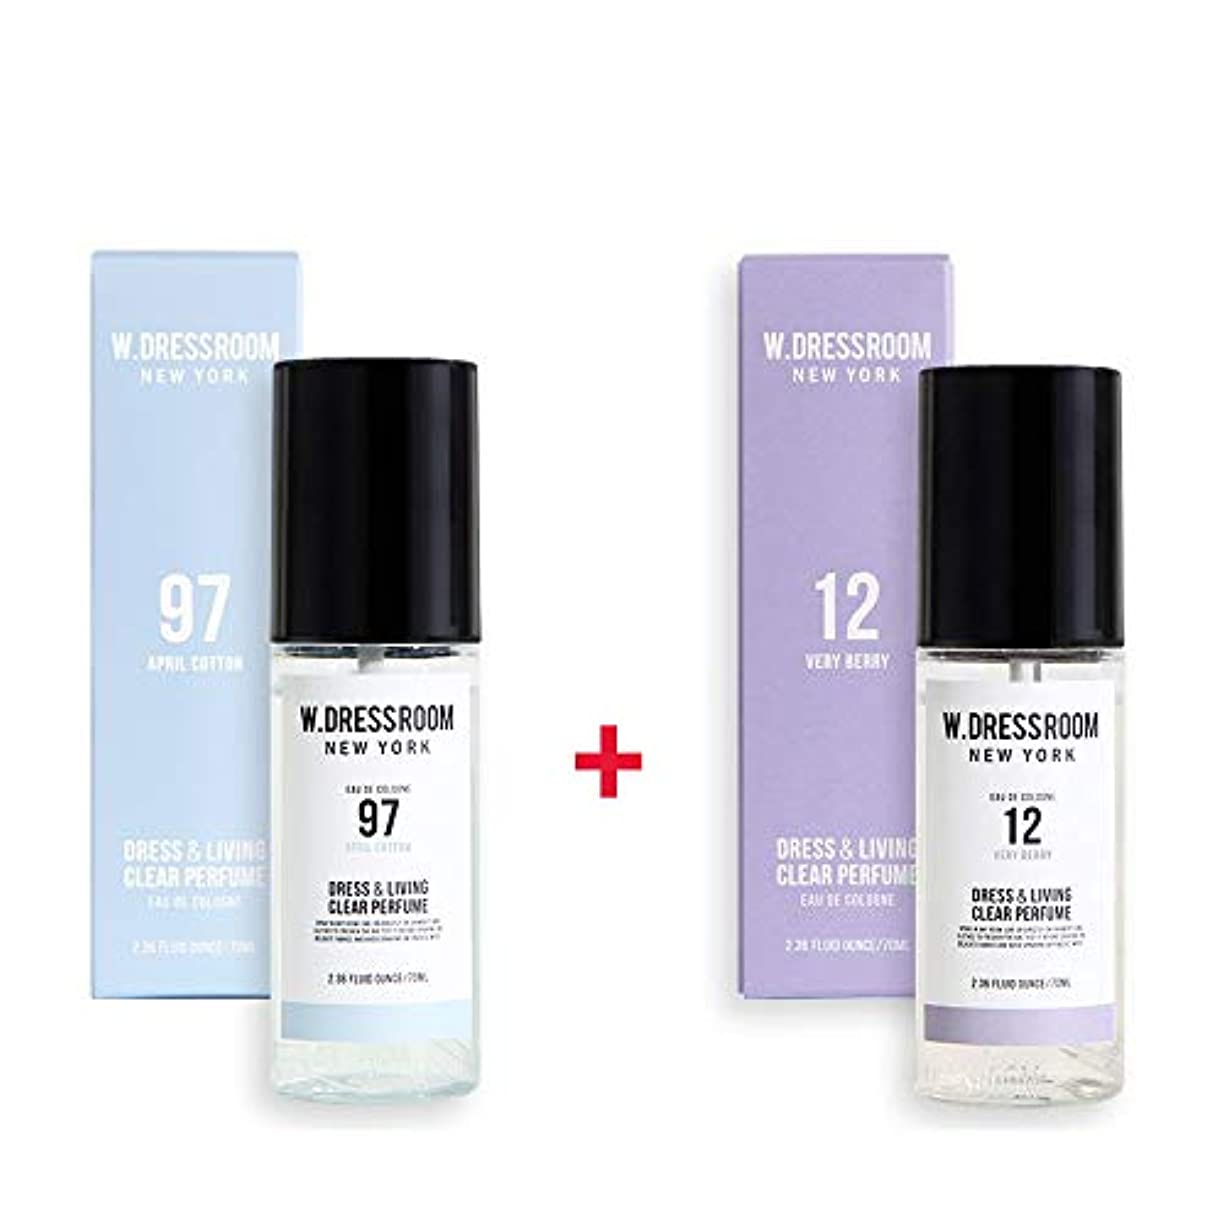 シビック討論言い直すW.DRESSROOM Dress & Living Clear Perfume 70ml (No 97 April Cotton)+(No 12 Very Berry)